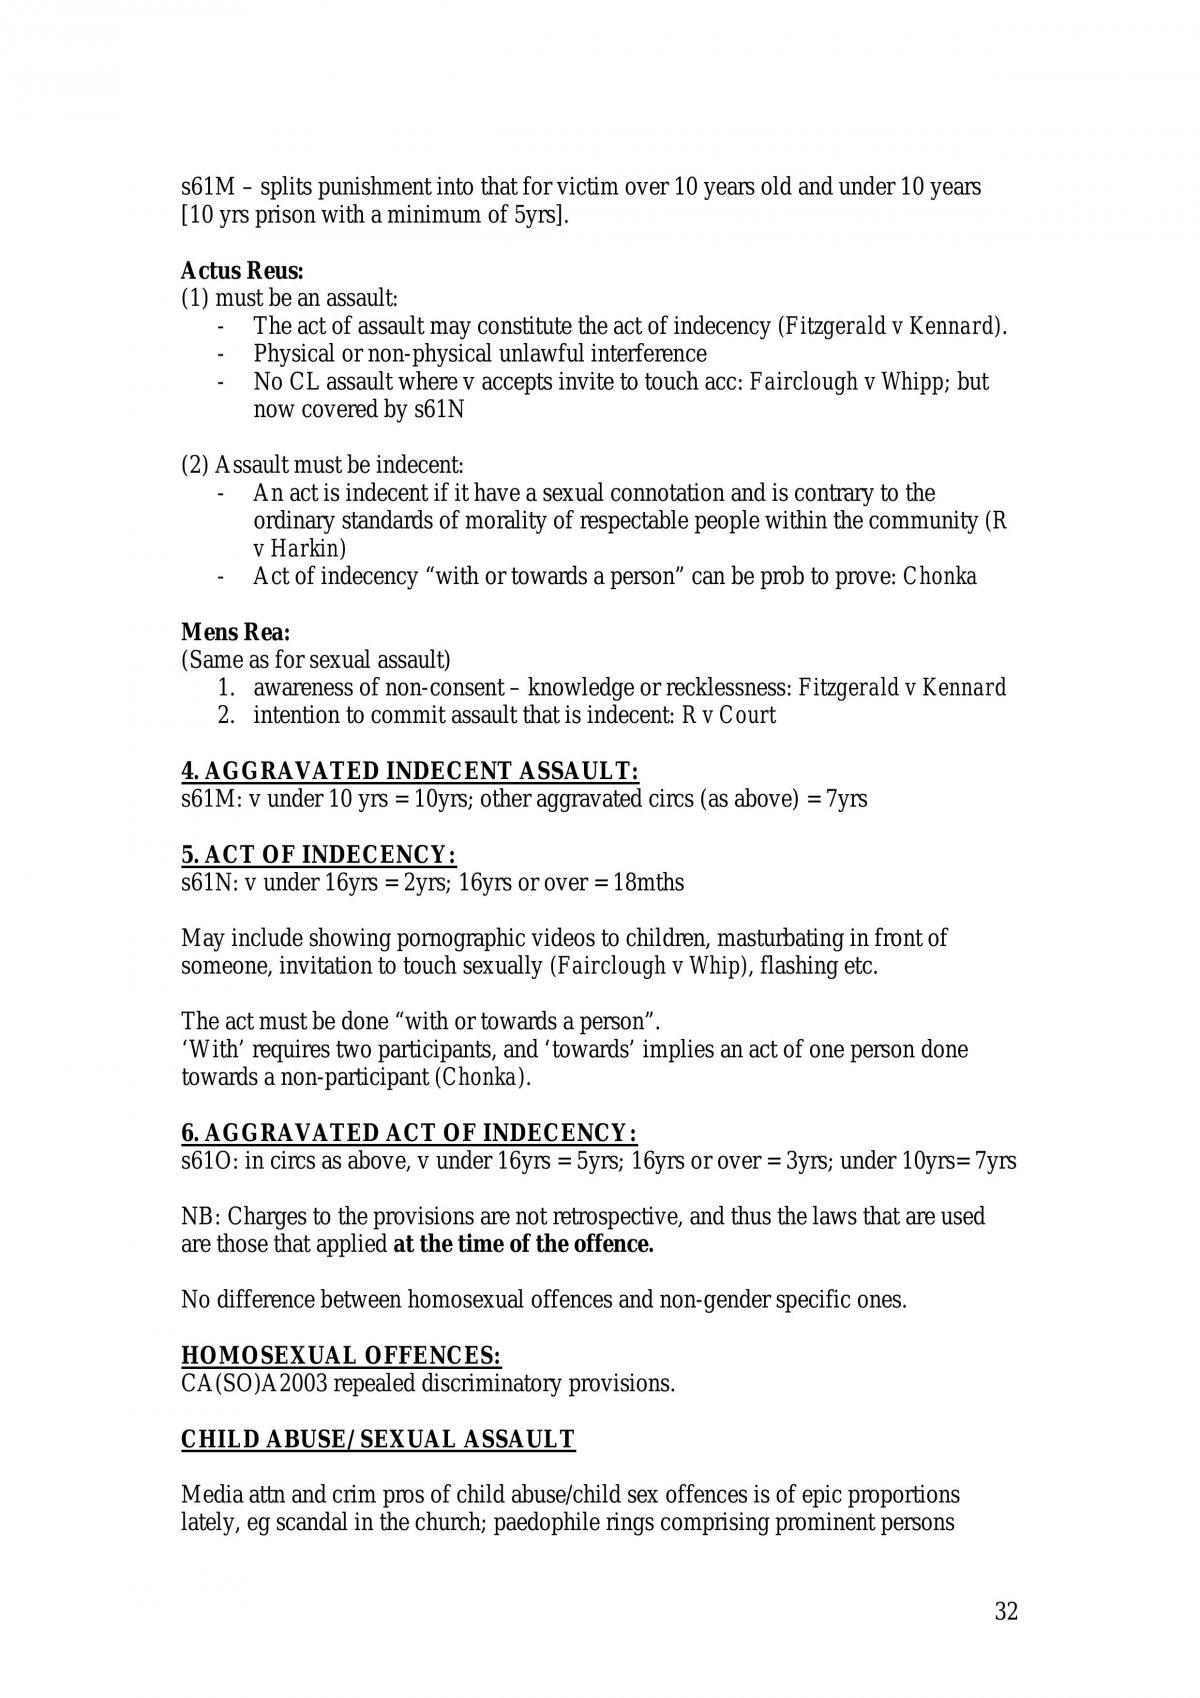 Crim Law 1 - Some Good Notes - Page 32